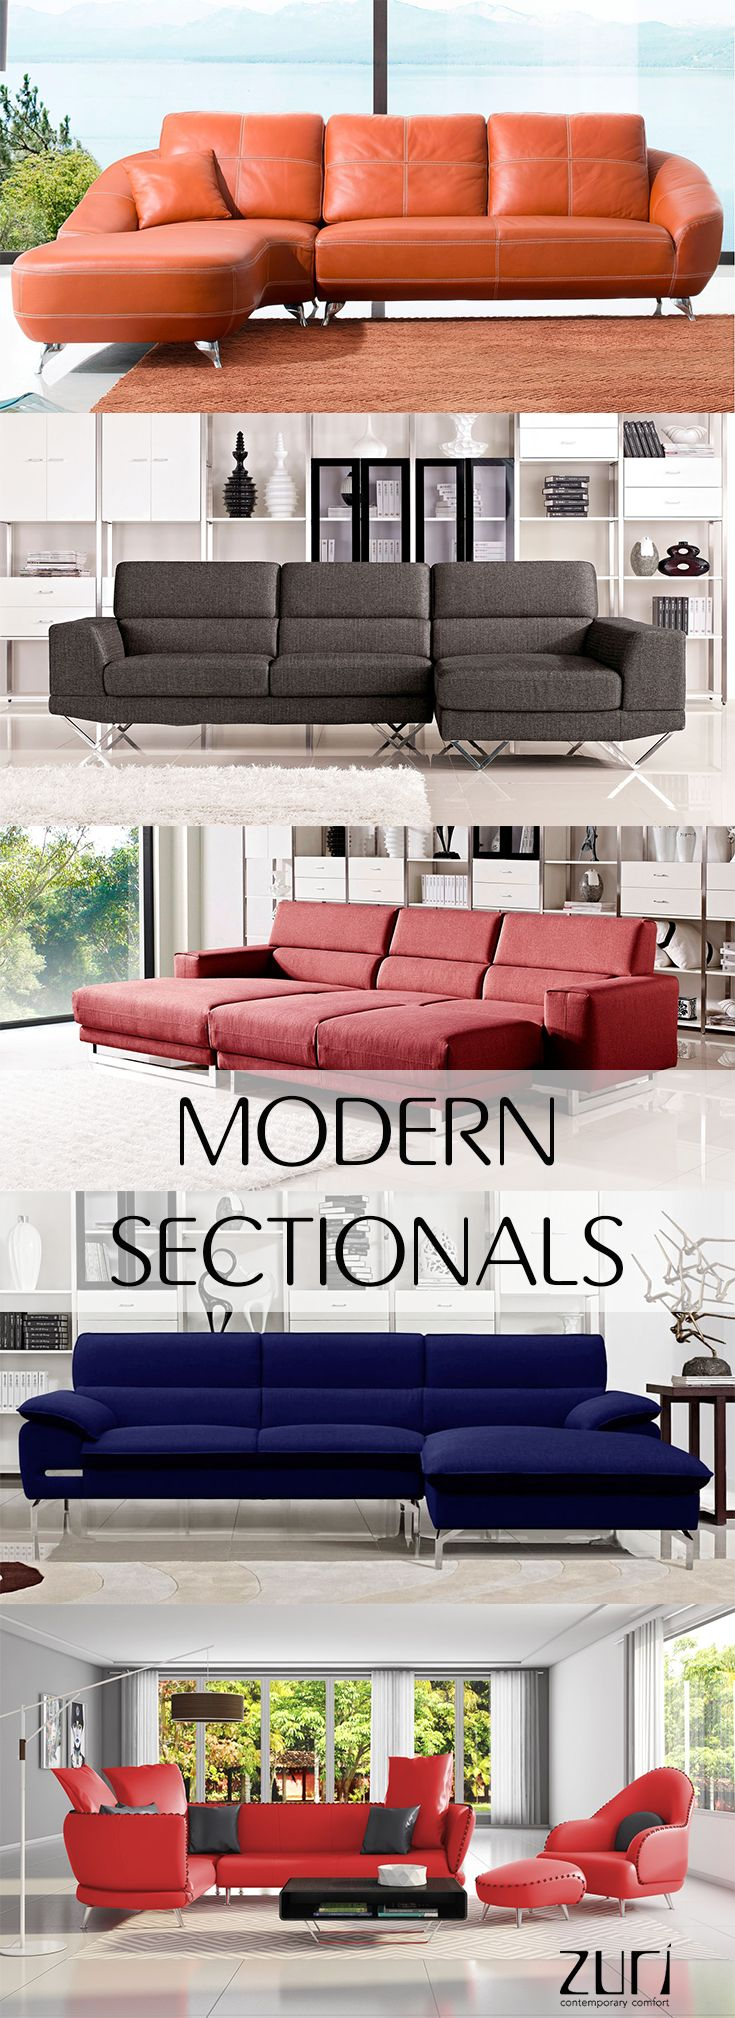 Best 25+ Modern sectional sofas ideas on Pinterest | L sofas DIY furniture reupholstery and DIY furniture 2x4 : quality sectionals - Sectionals, Sofas & Couches